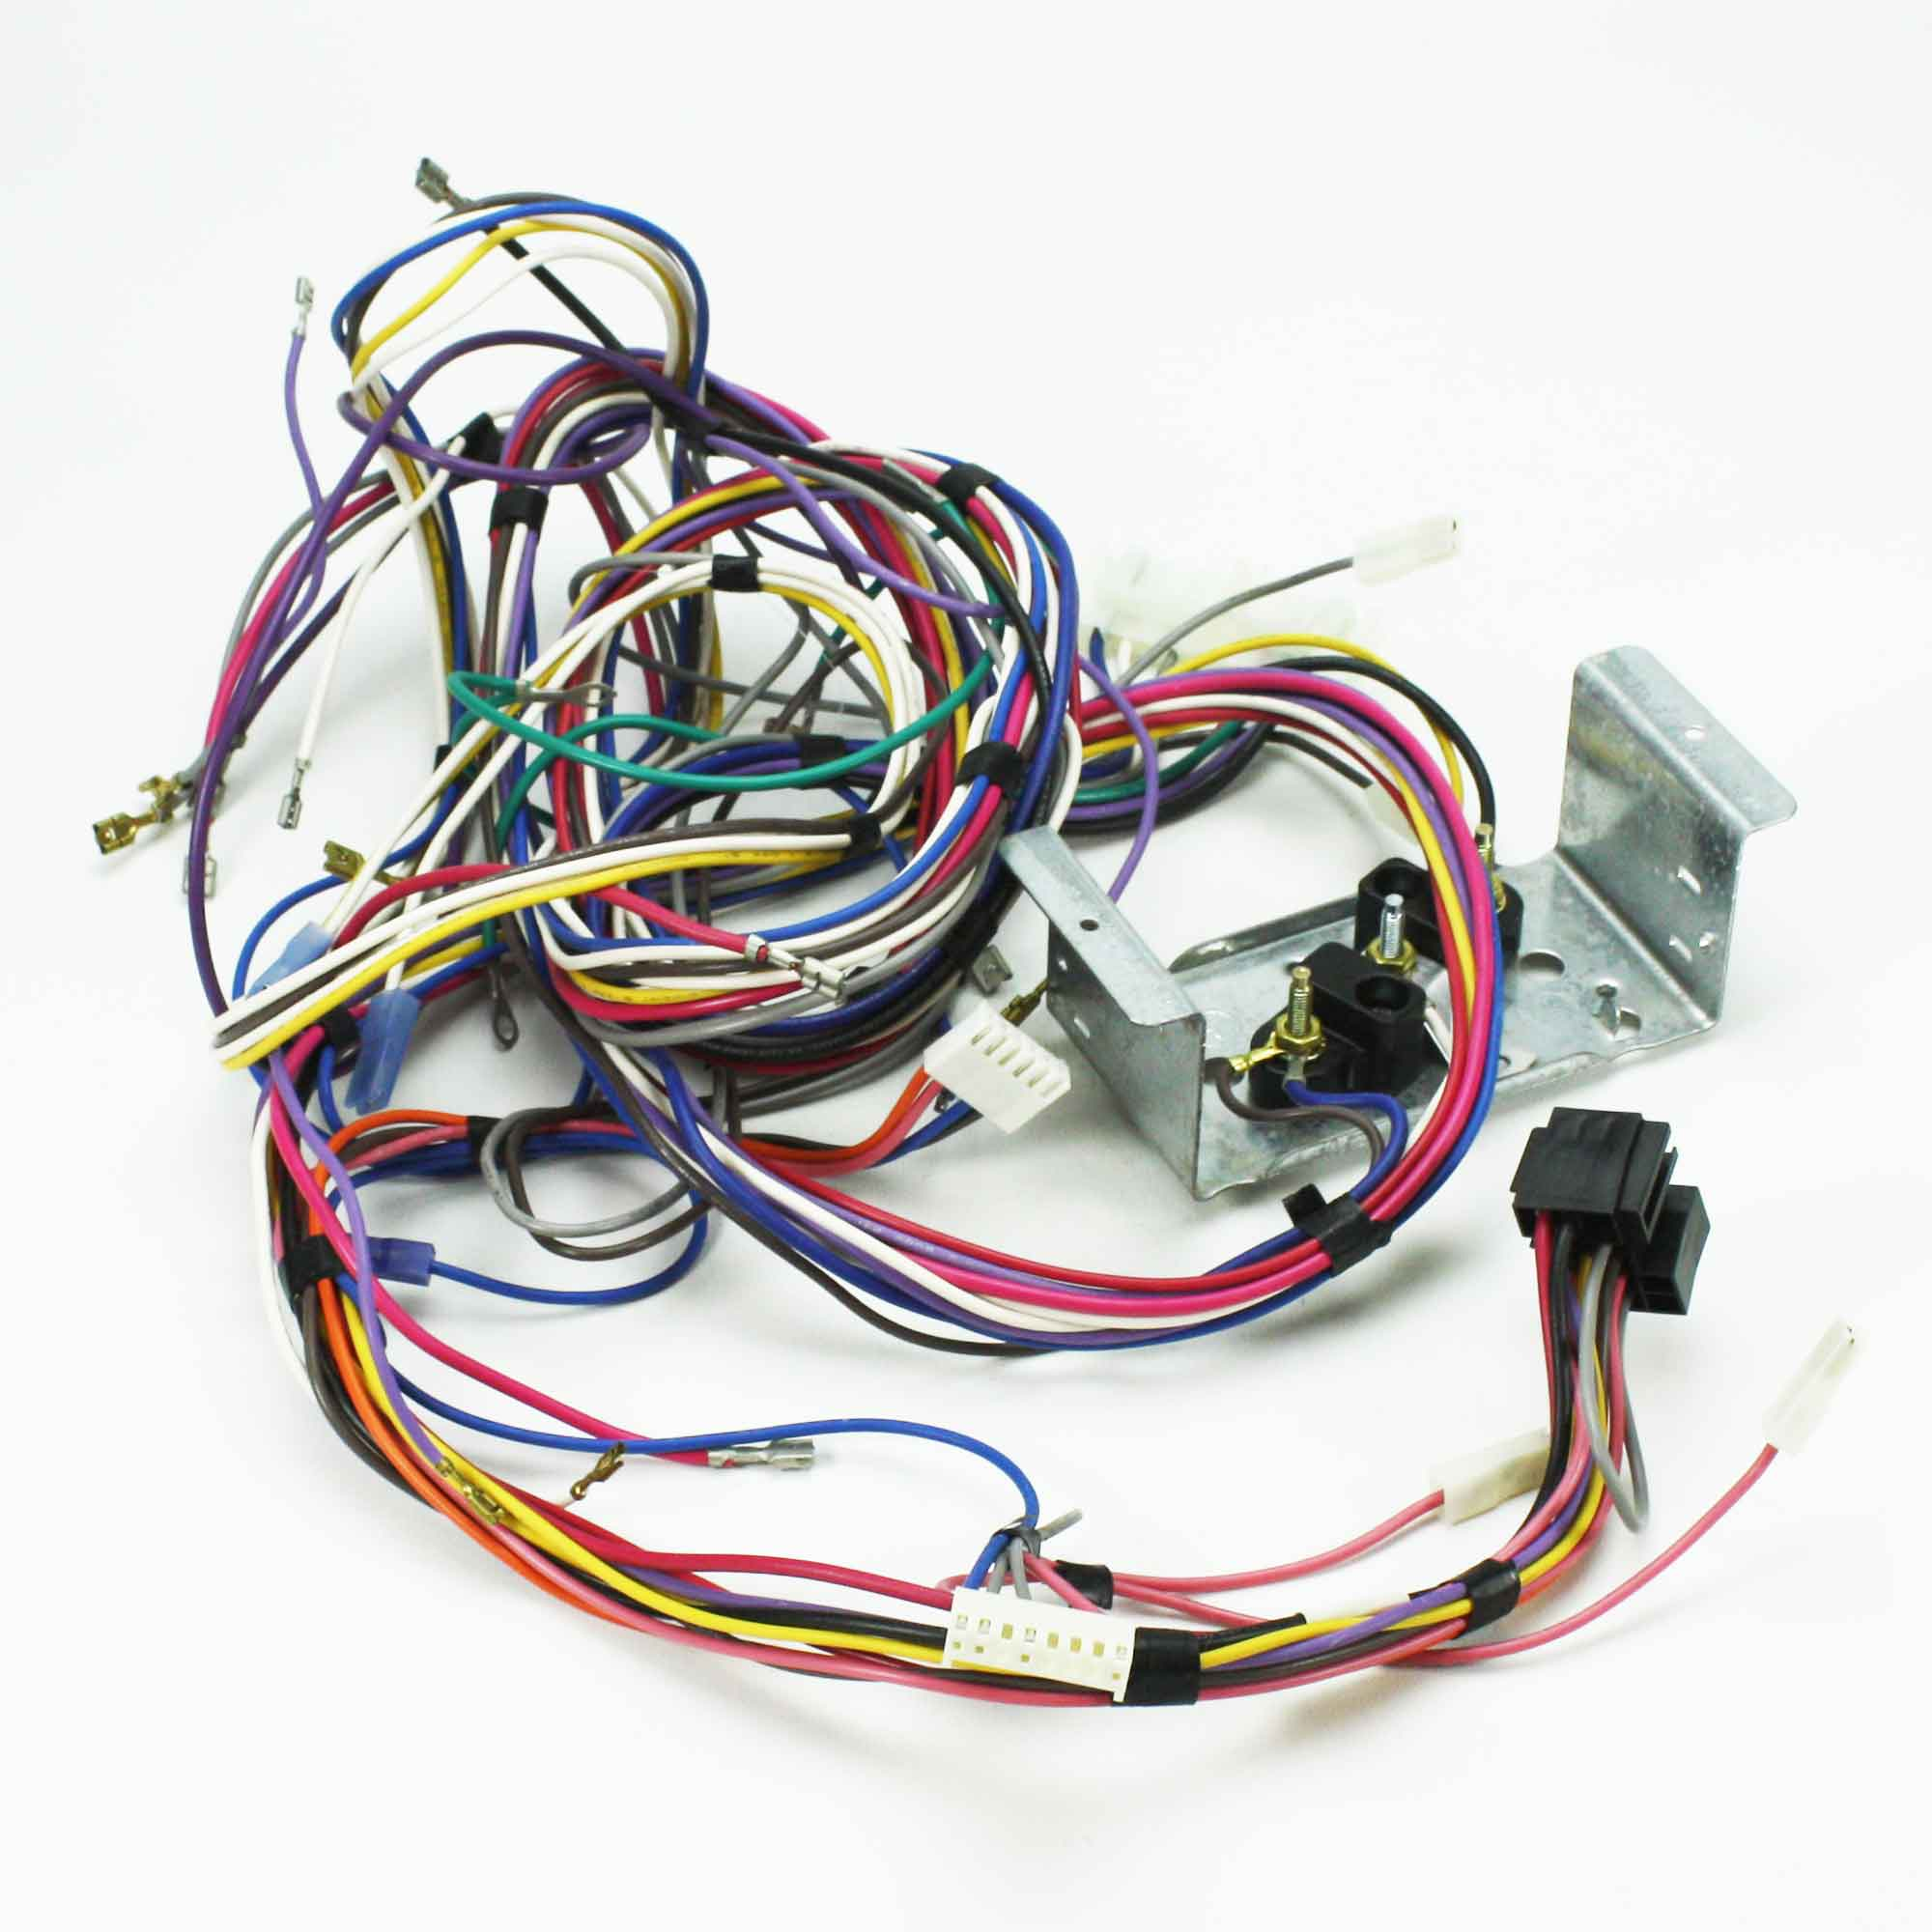 hight resolution of wiring harnes for whirlpool dryer